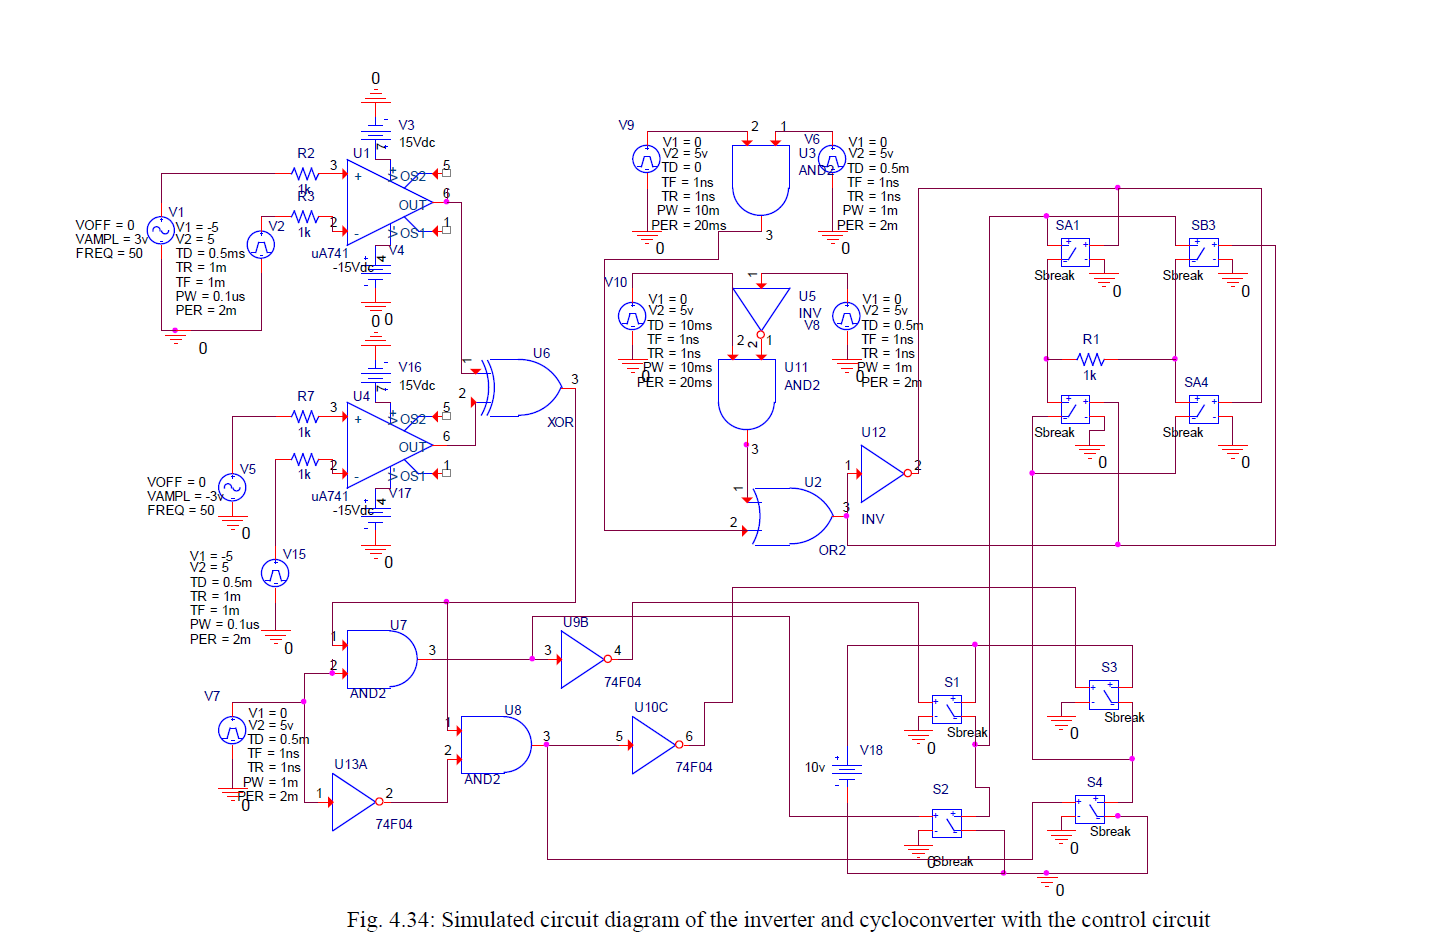 Power Electronics Electrnica De Potencia Leistungselektronik Riello Ups Circuit Diagram High Frequency Link System A Thesis Submitted For The Degree Of Master Philosophy By Emad Abdulrazzaq Rasool School Engineering And Design